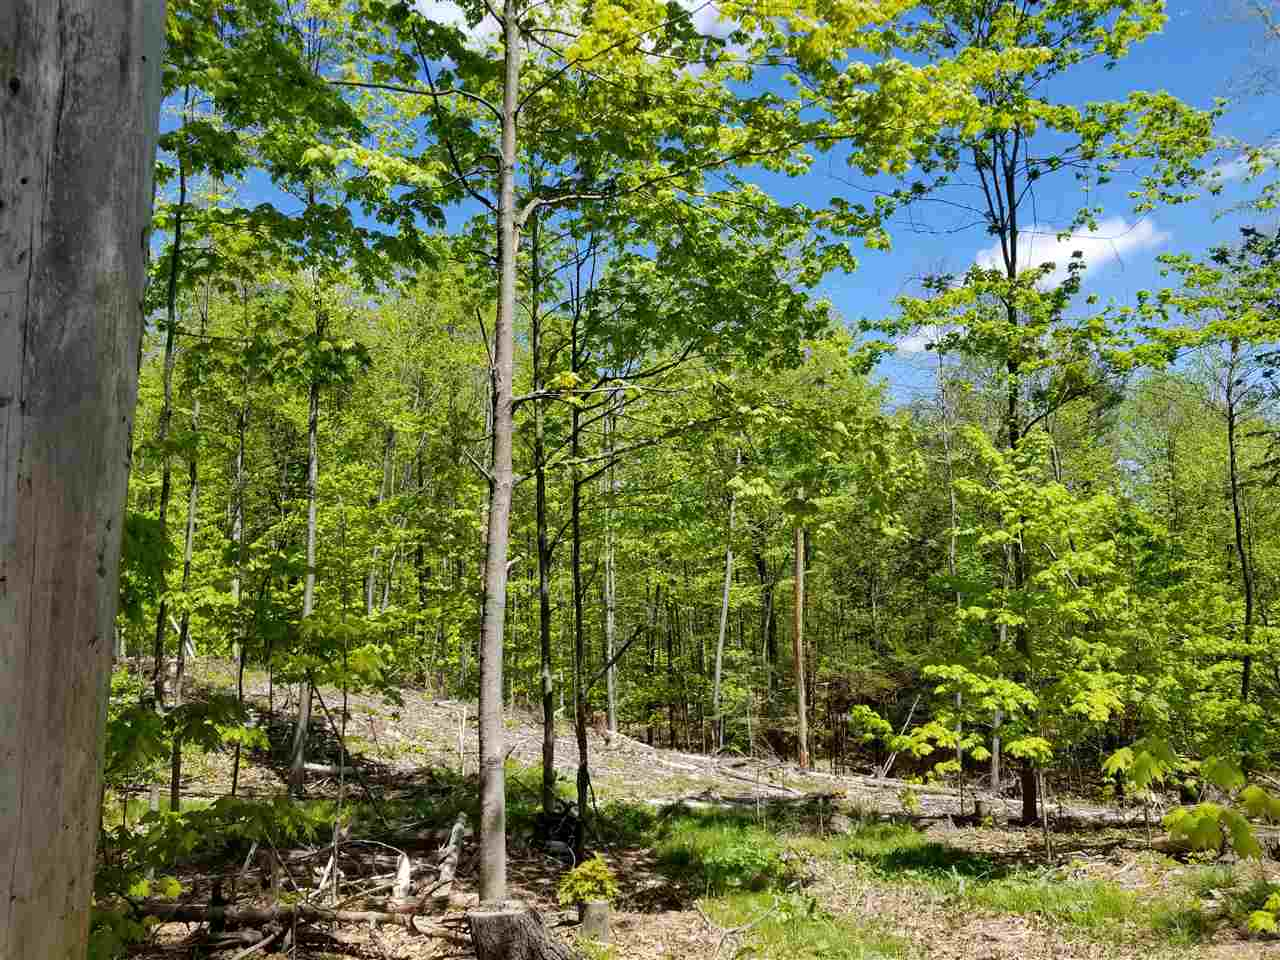 MLS 4774293: Lot 1-36 Trow Road, Mont Vernon NH